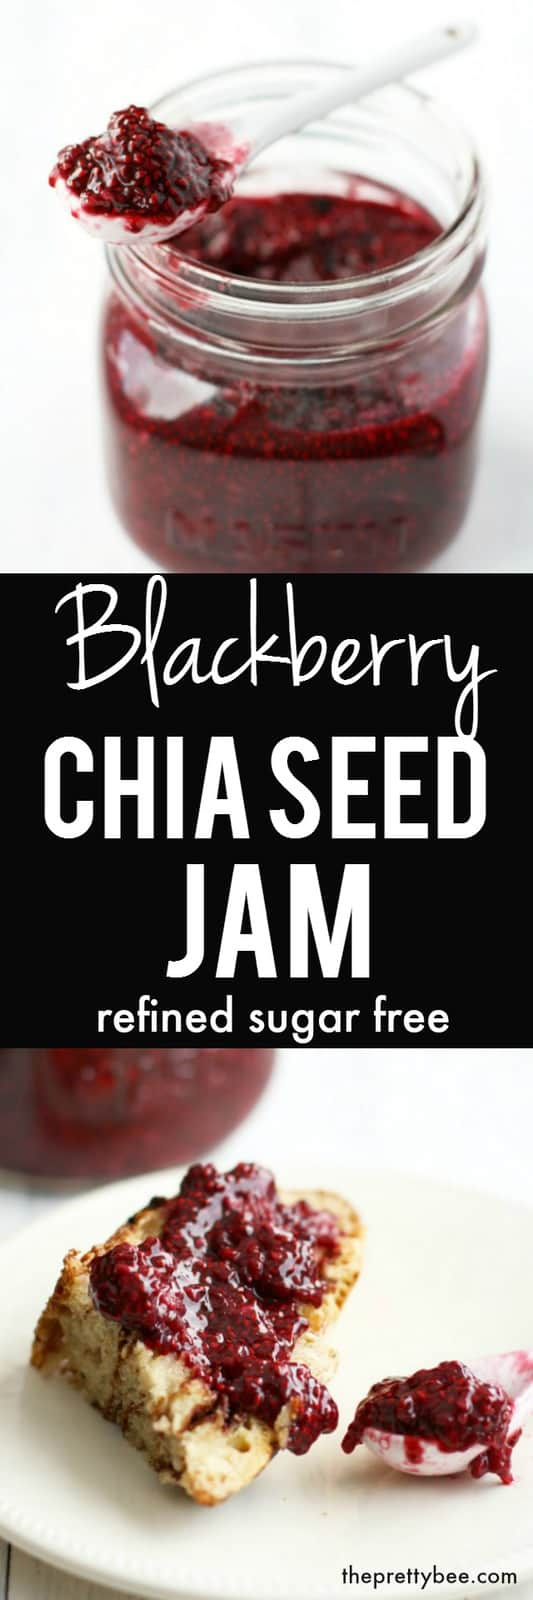 This blackberry chia seed jam is so easy to make and no pectin is required! It's delicious, healthy, and refined sugar free!